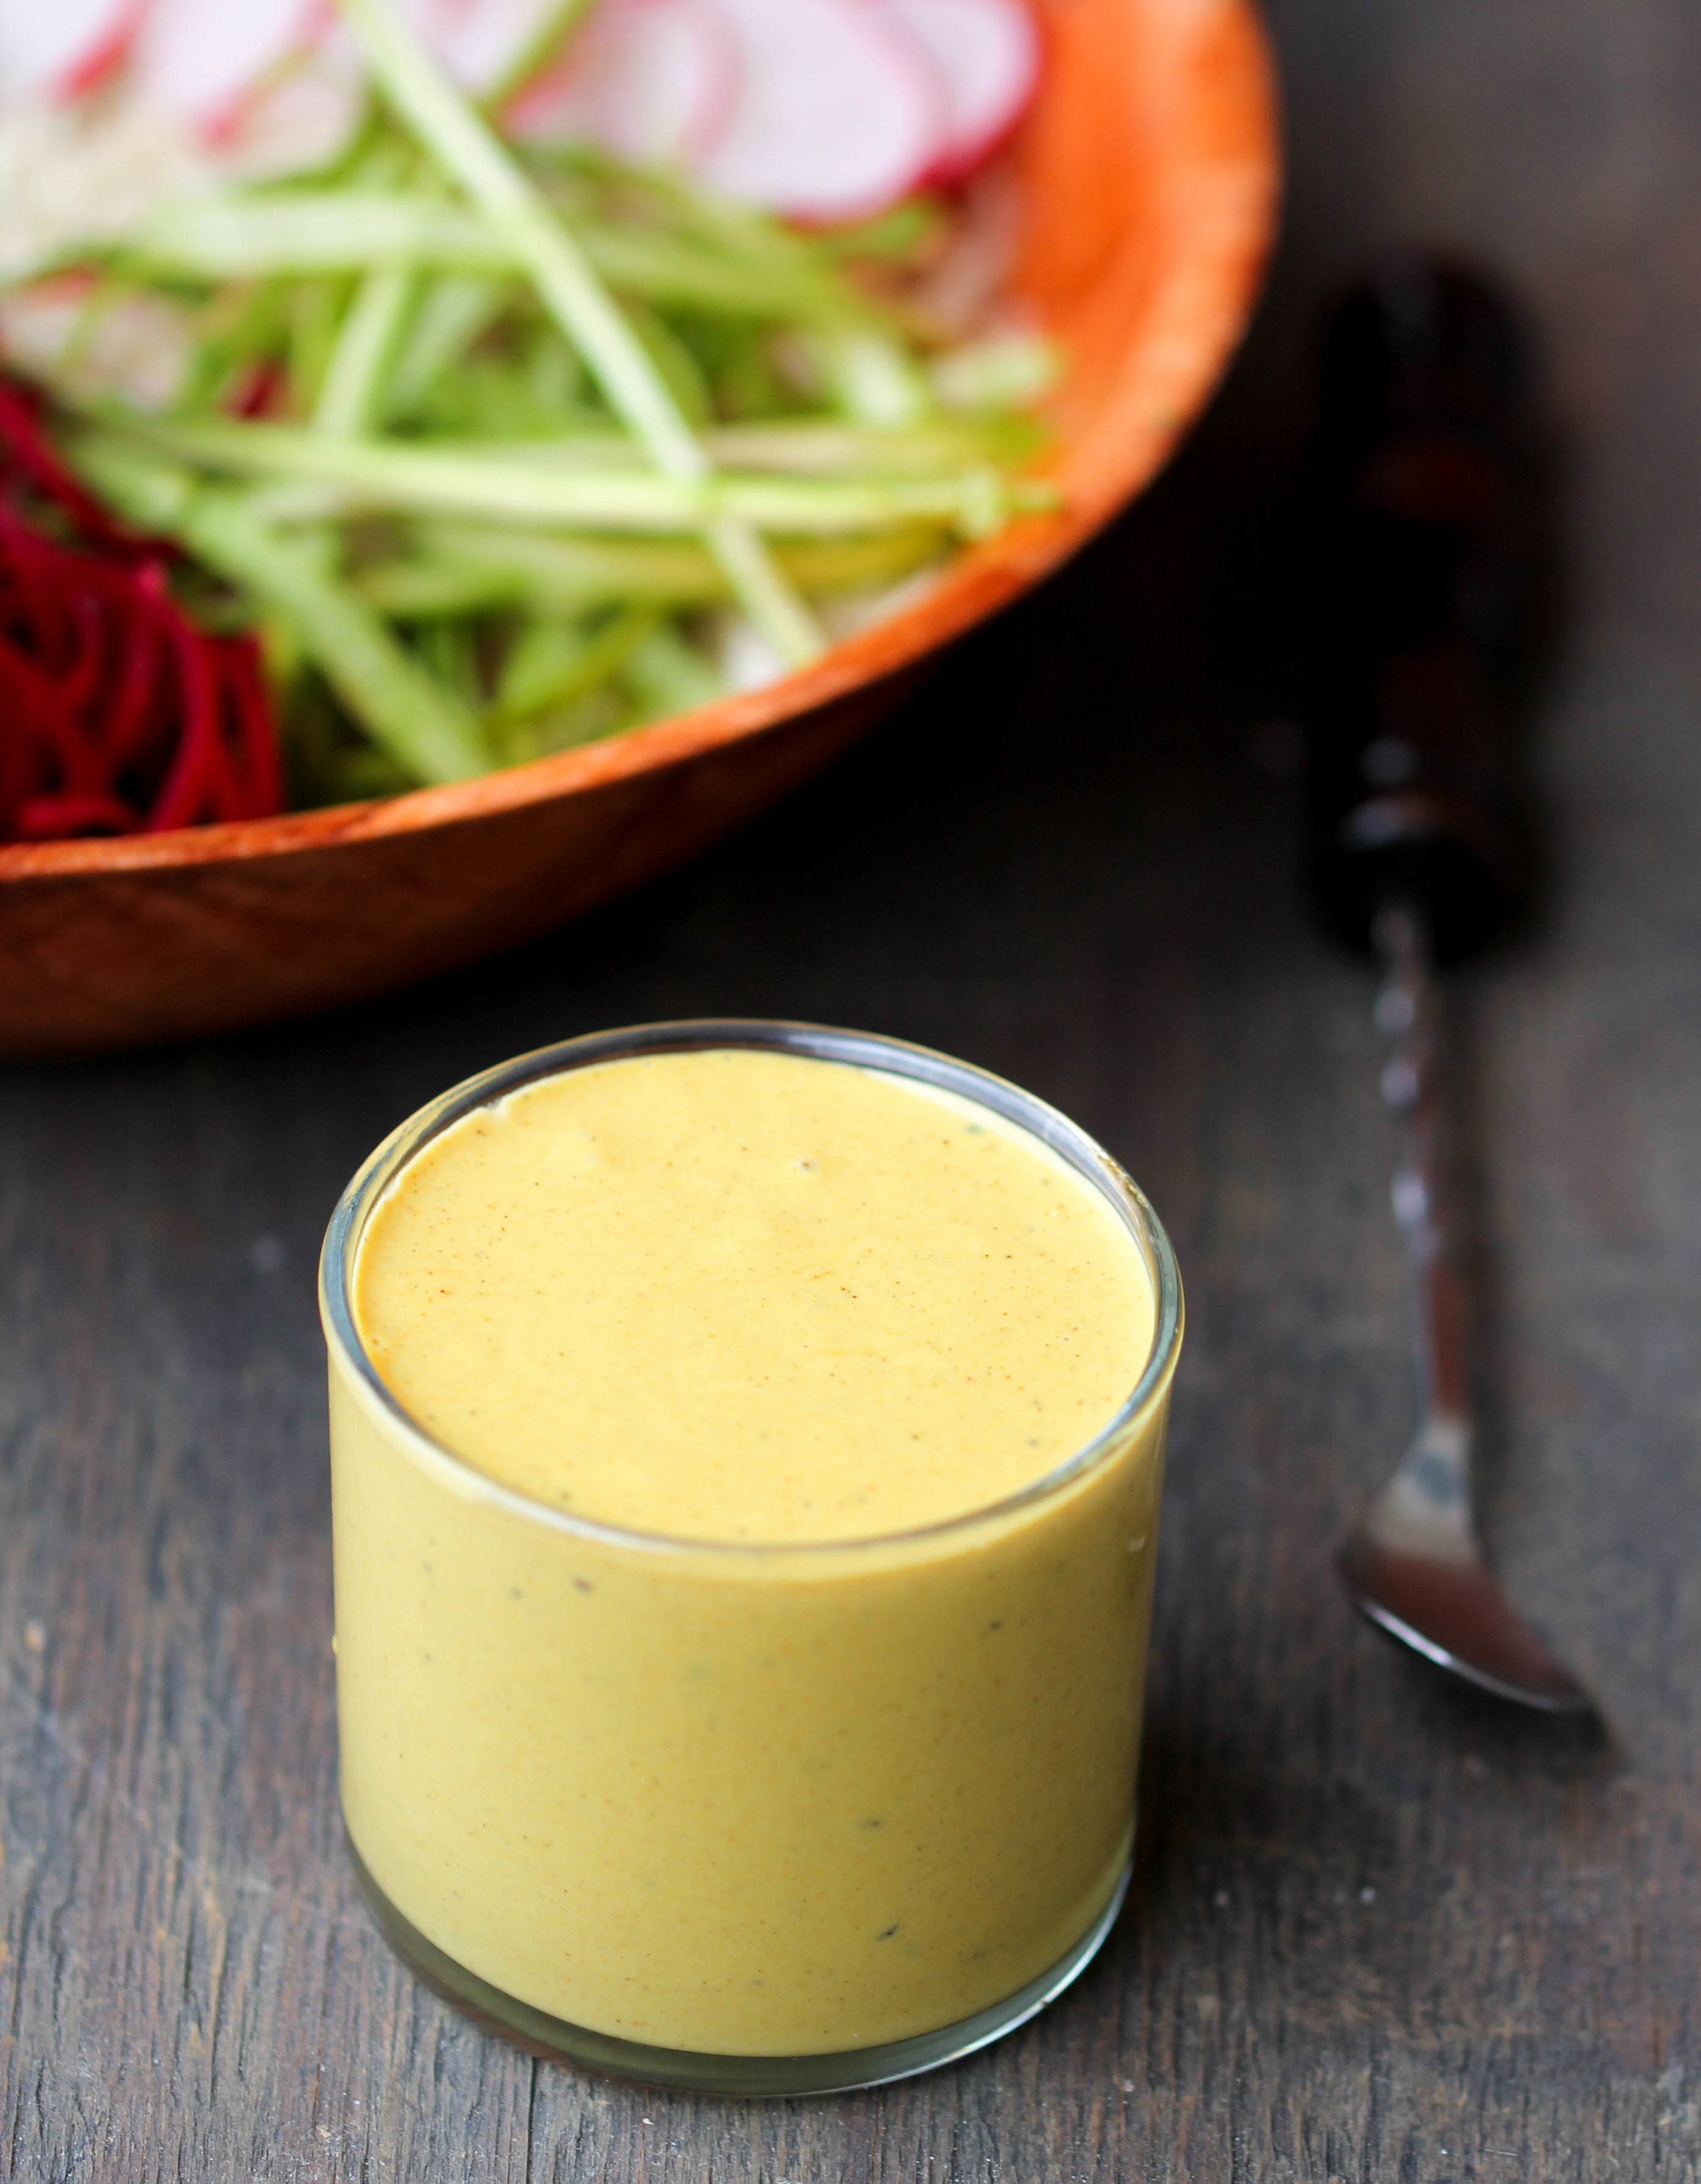 Spring Veggies with Tahini Turmeric Dressing will make eating veggies so much more exciting and adds a nutrition boost into your life with simple, flexible, easy to find ingredients.